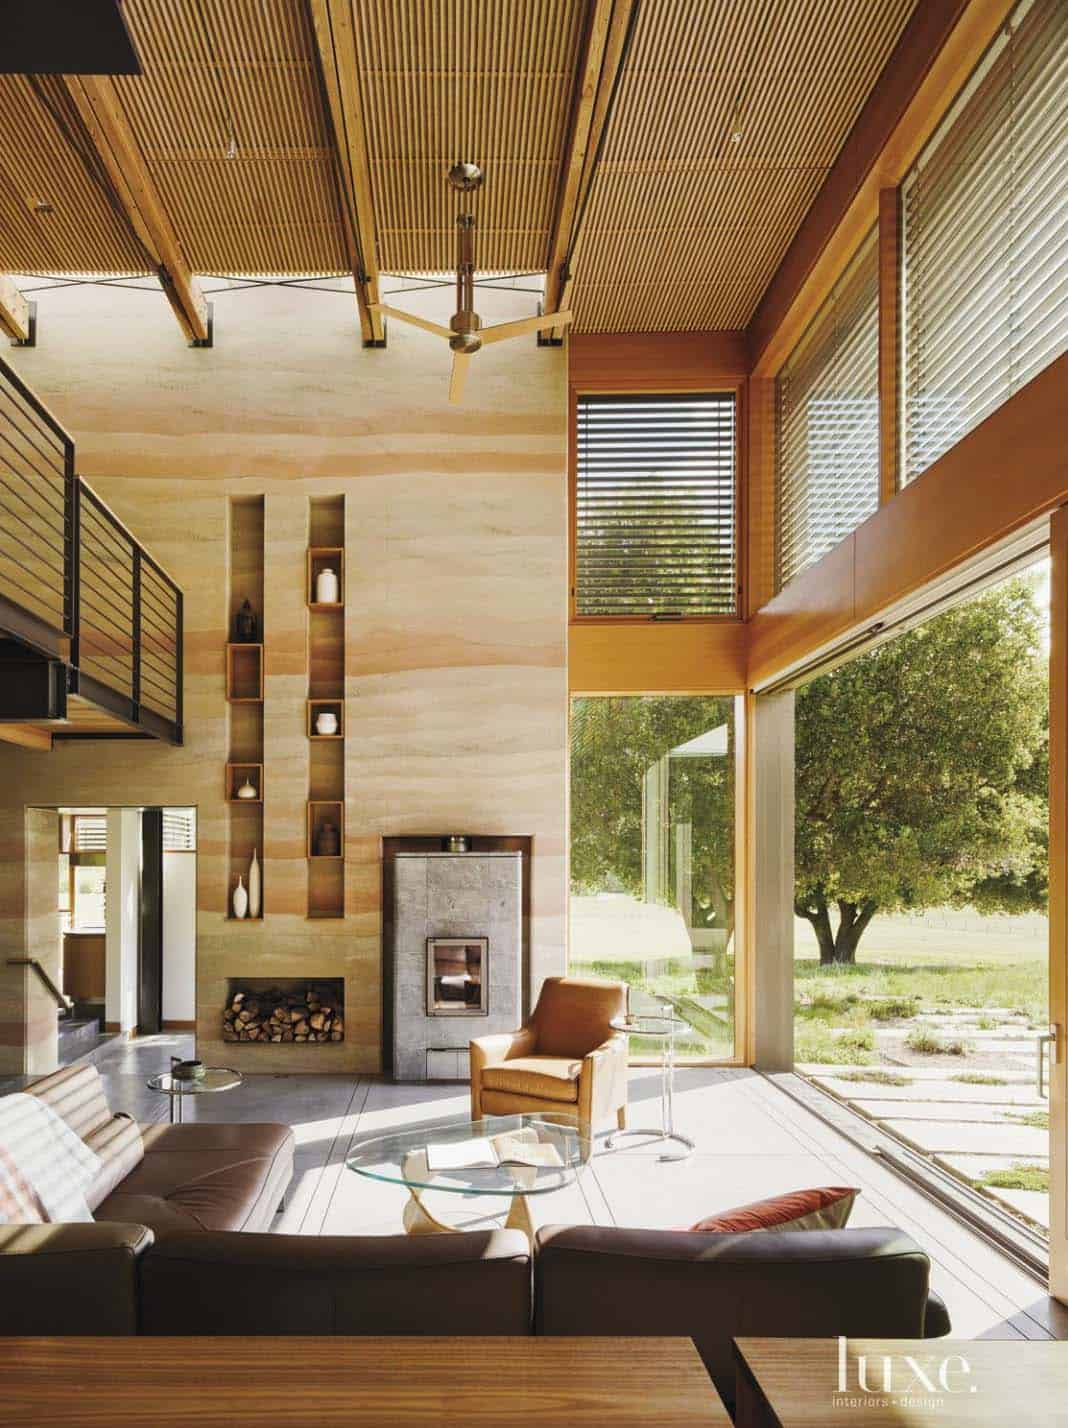 Rammed earth house hidden in the forested hills of Northern California